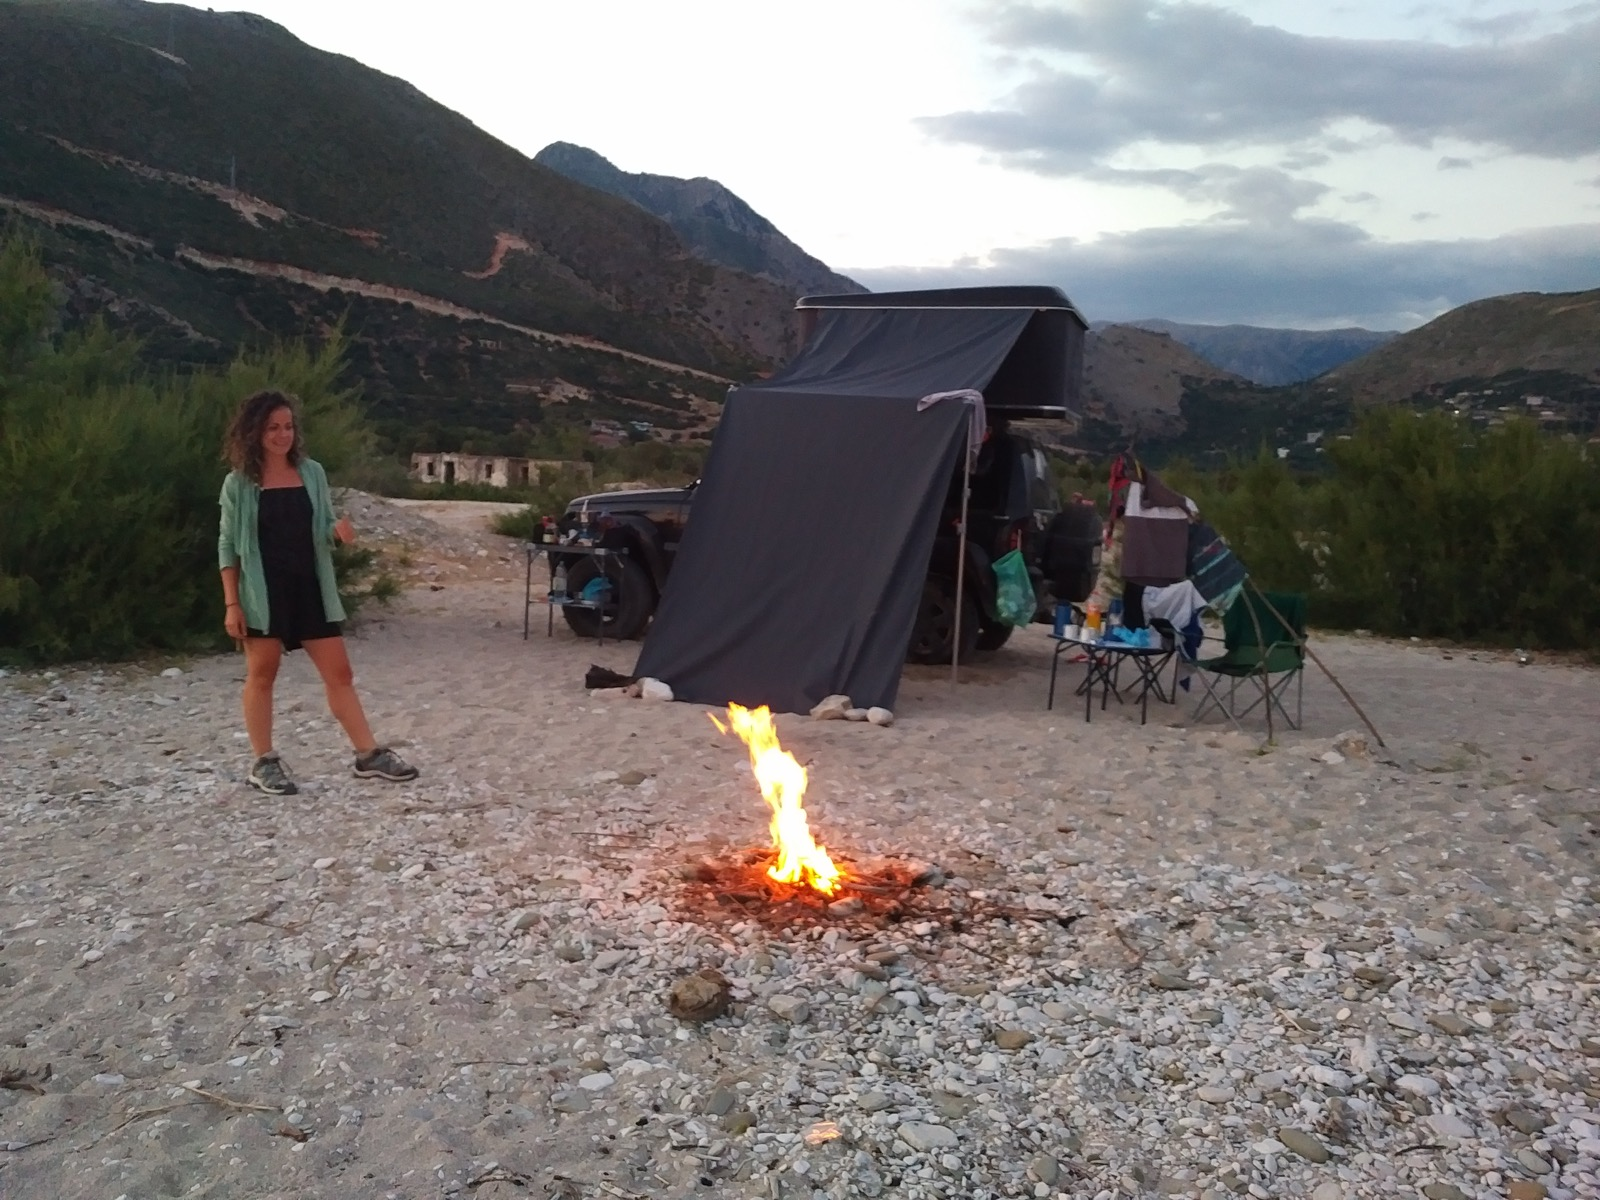 Offroad in Albanien - Camplife deluxe am Strand von Borsh inklusive Lagerfeuer